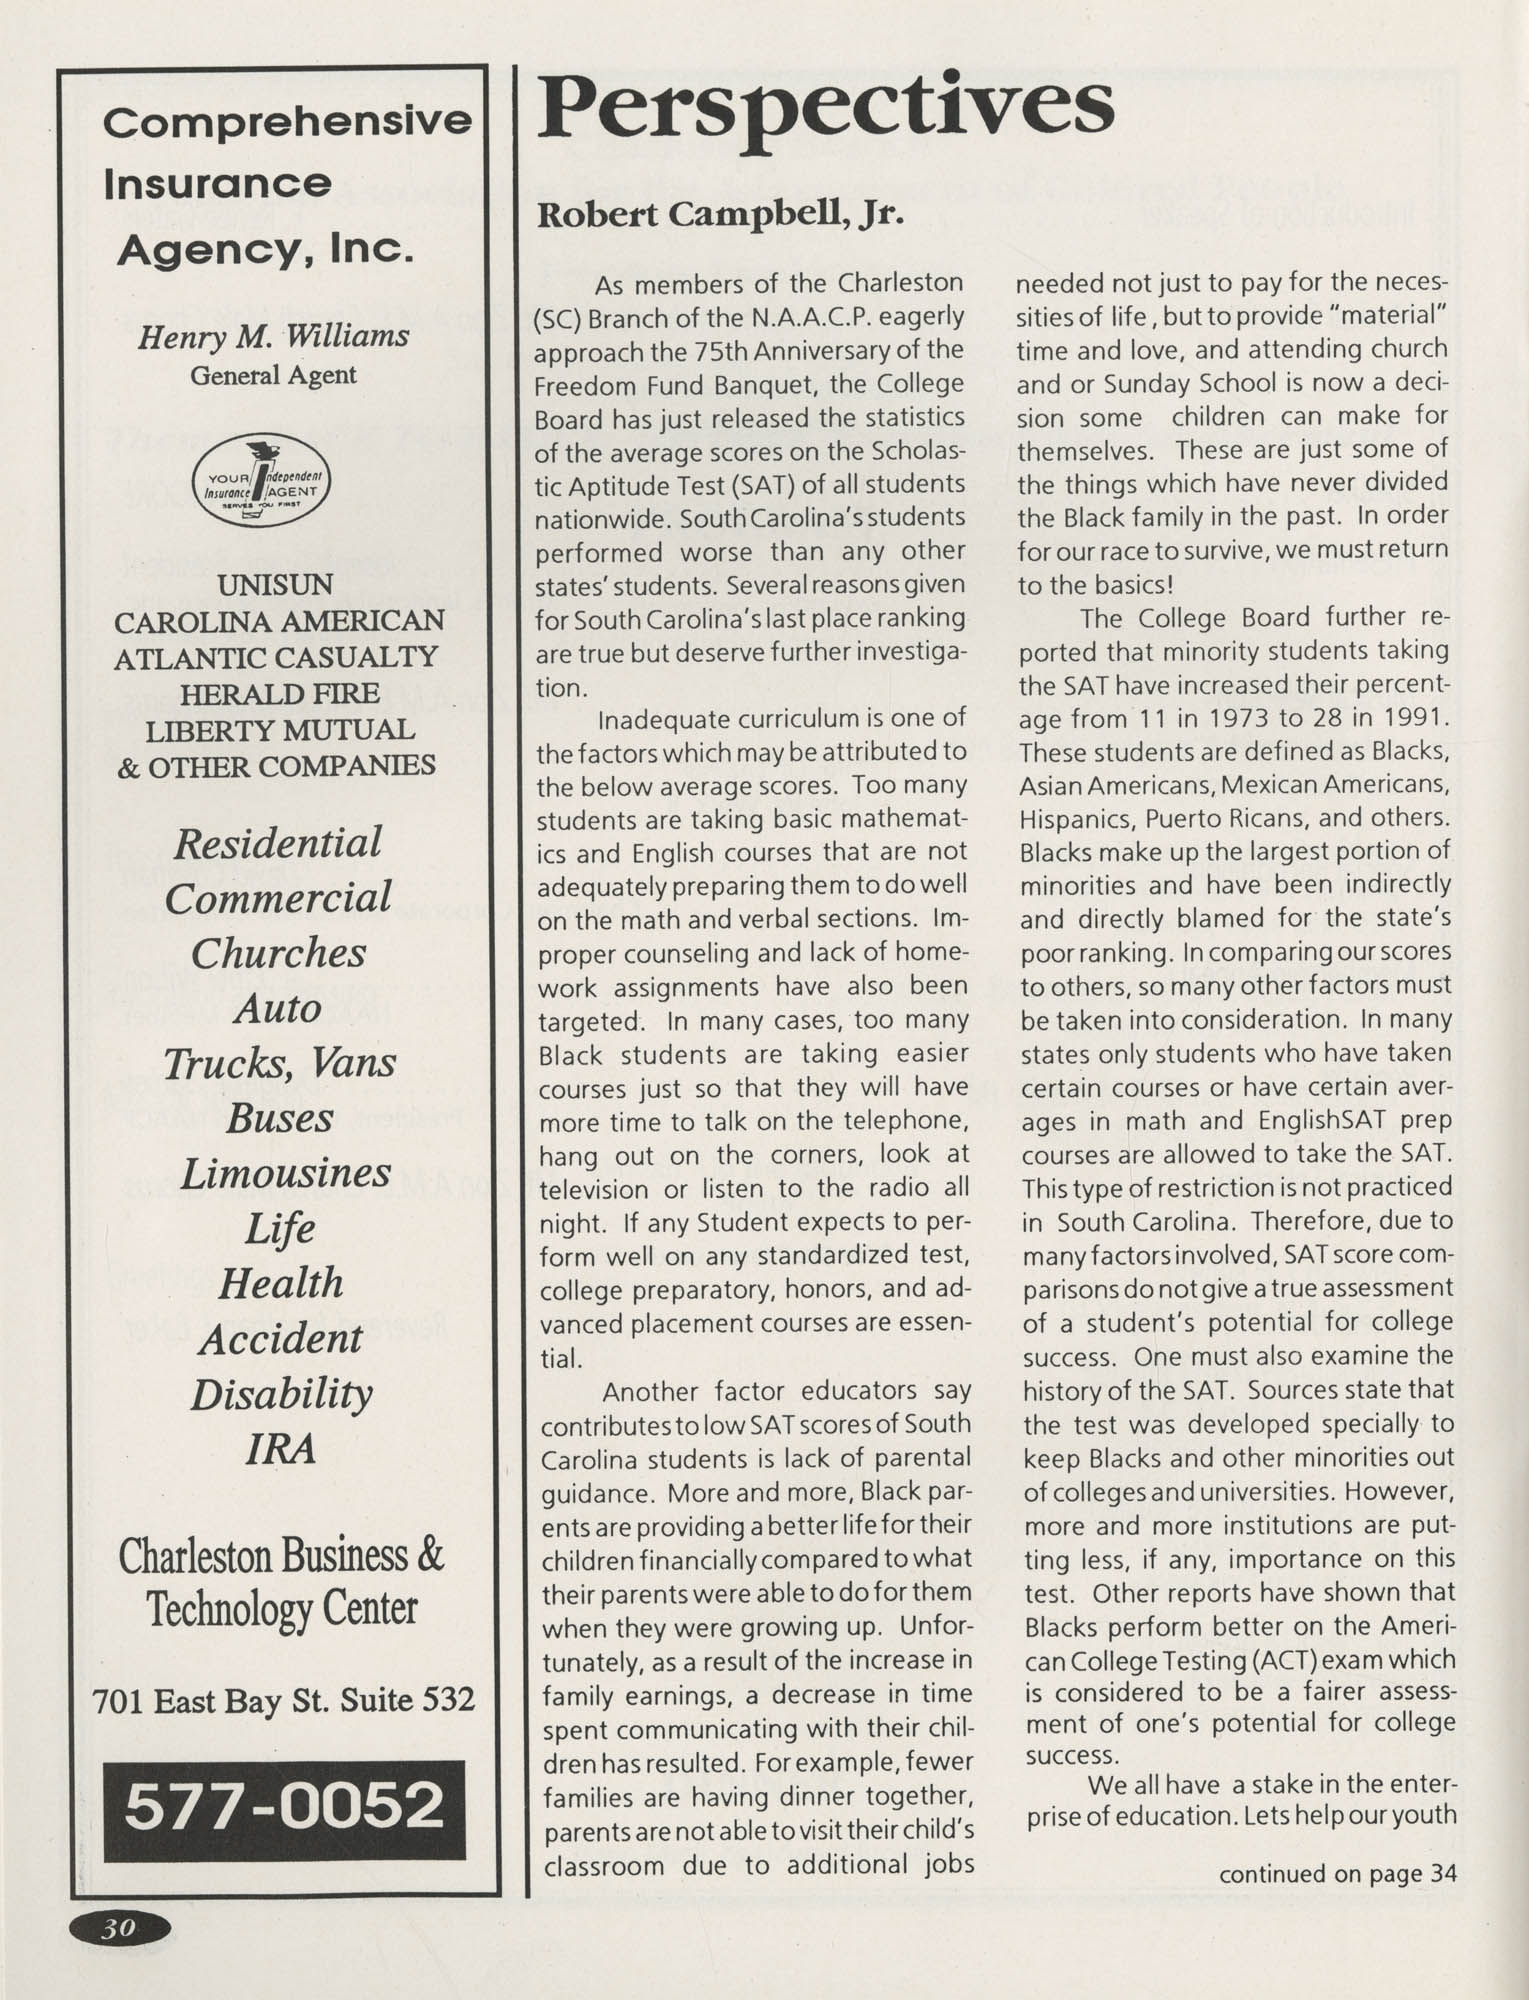 1991 Freedom Fund Magazine, Charleston Branch of the NAACP, Page 30